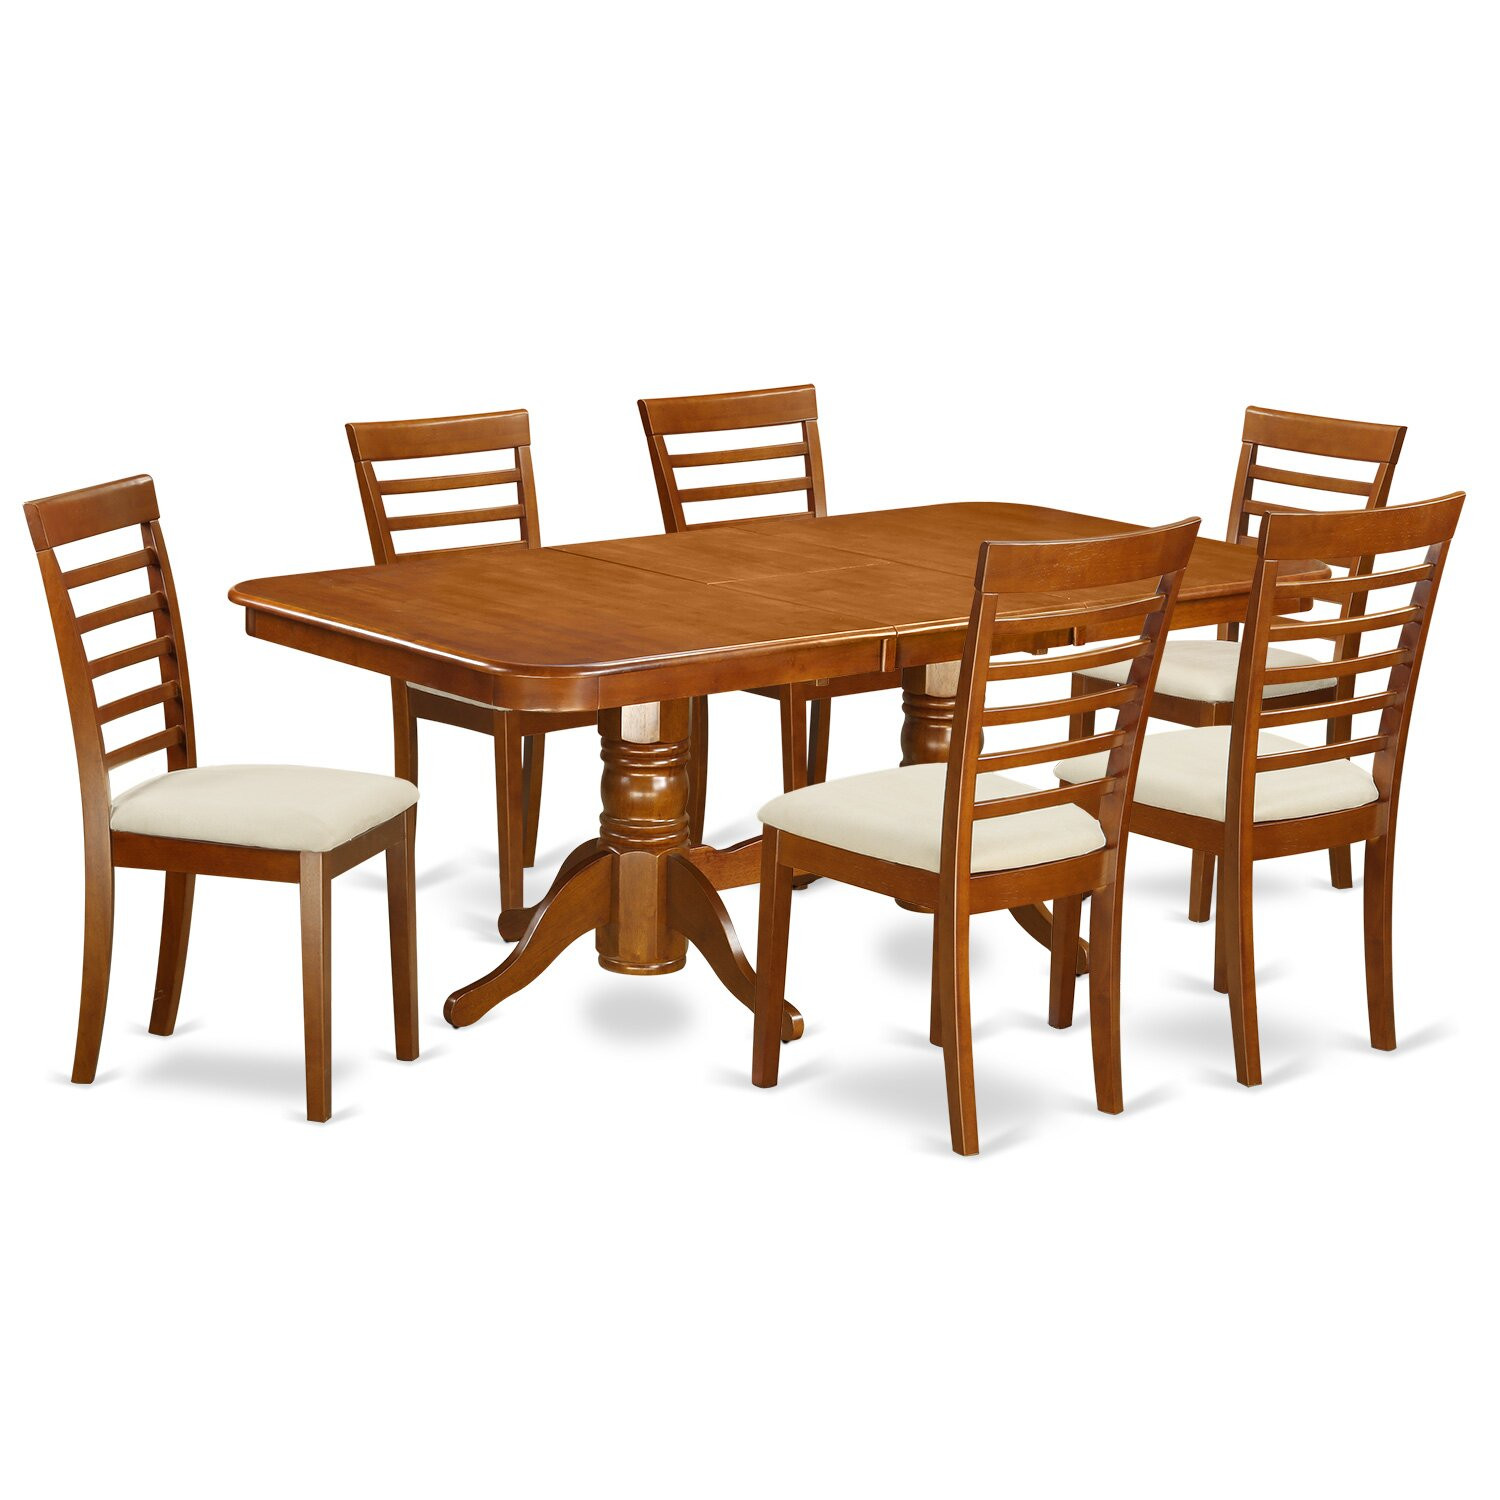 east west napoleon 7 piece dining set reviews wayfair